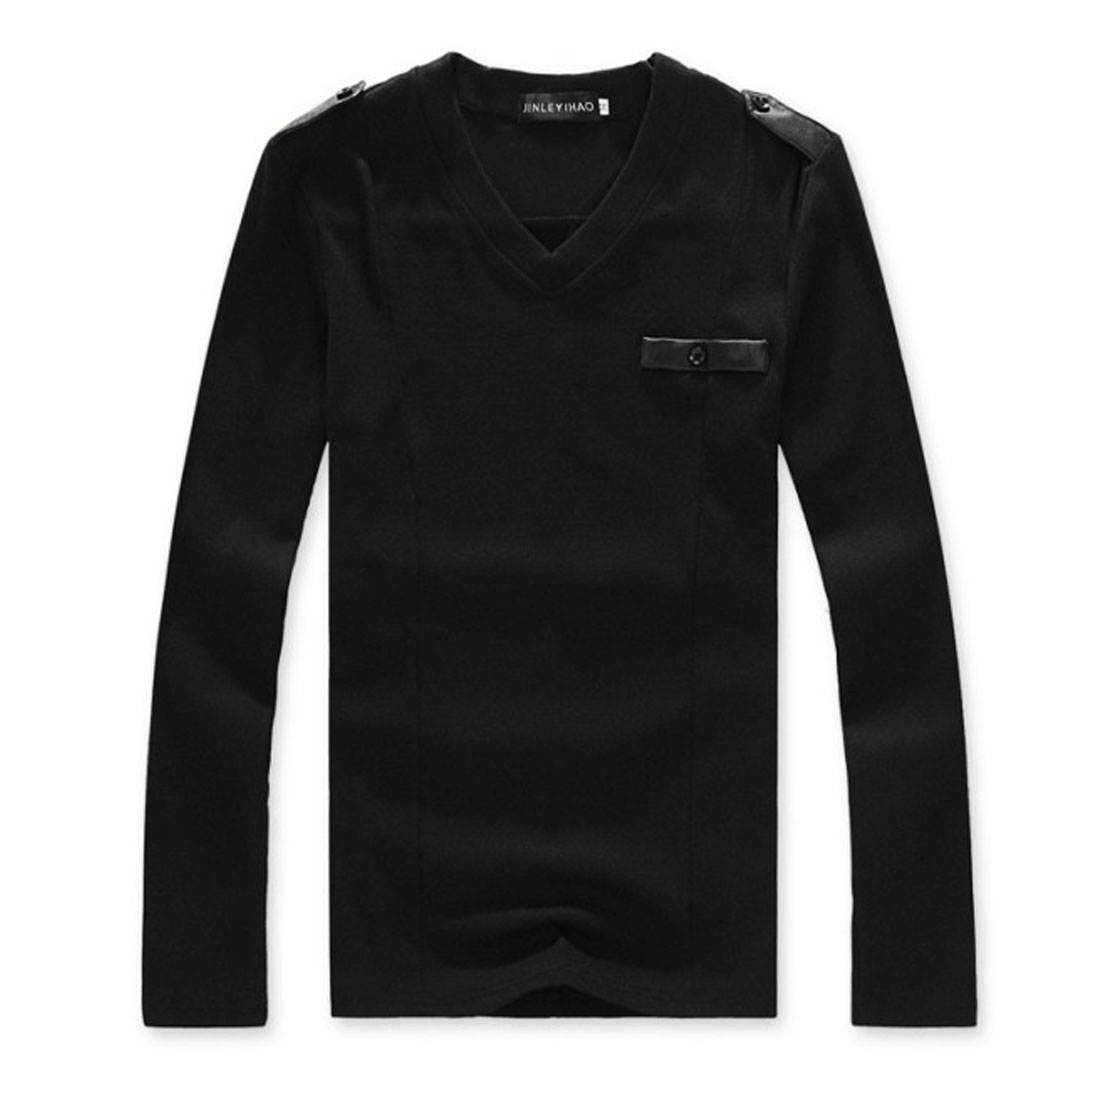 Men Stylish Long Sleeve Pullover Mock Chest Pocket Black Shirt S